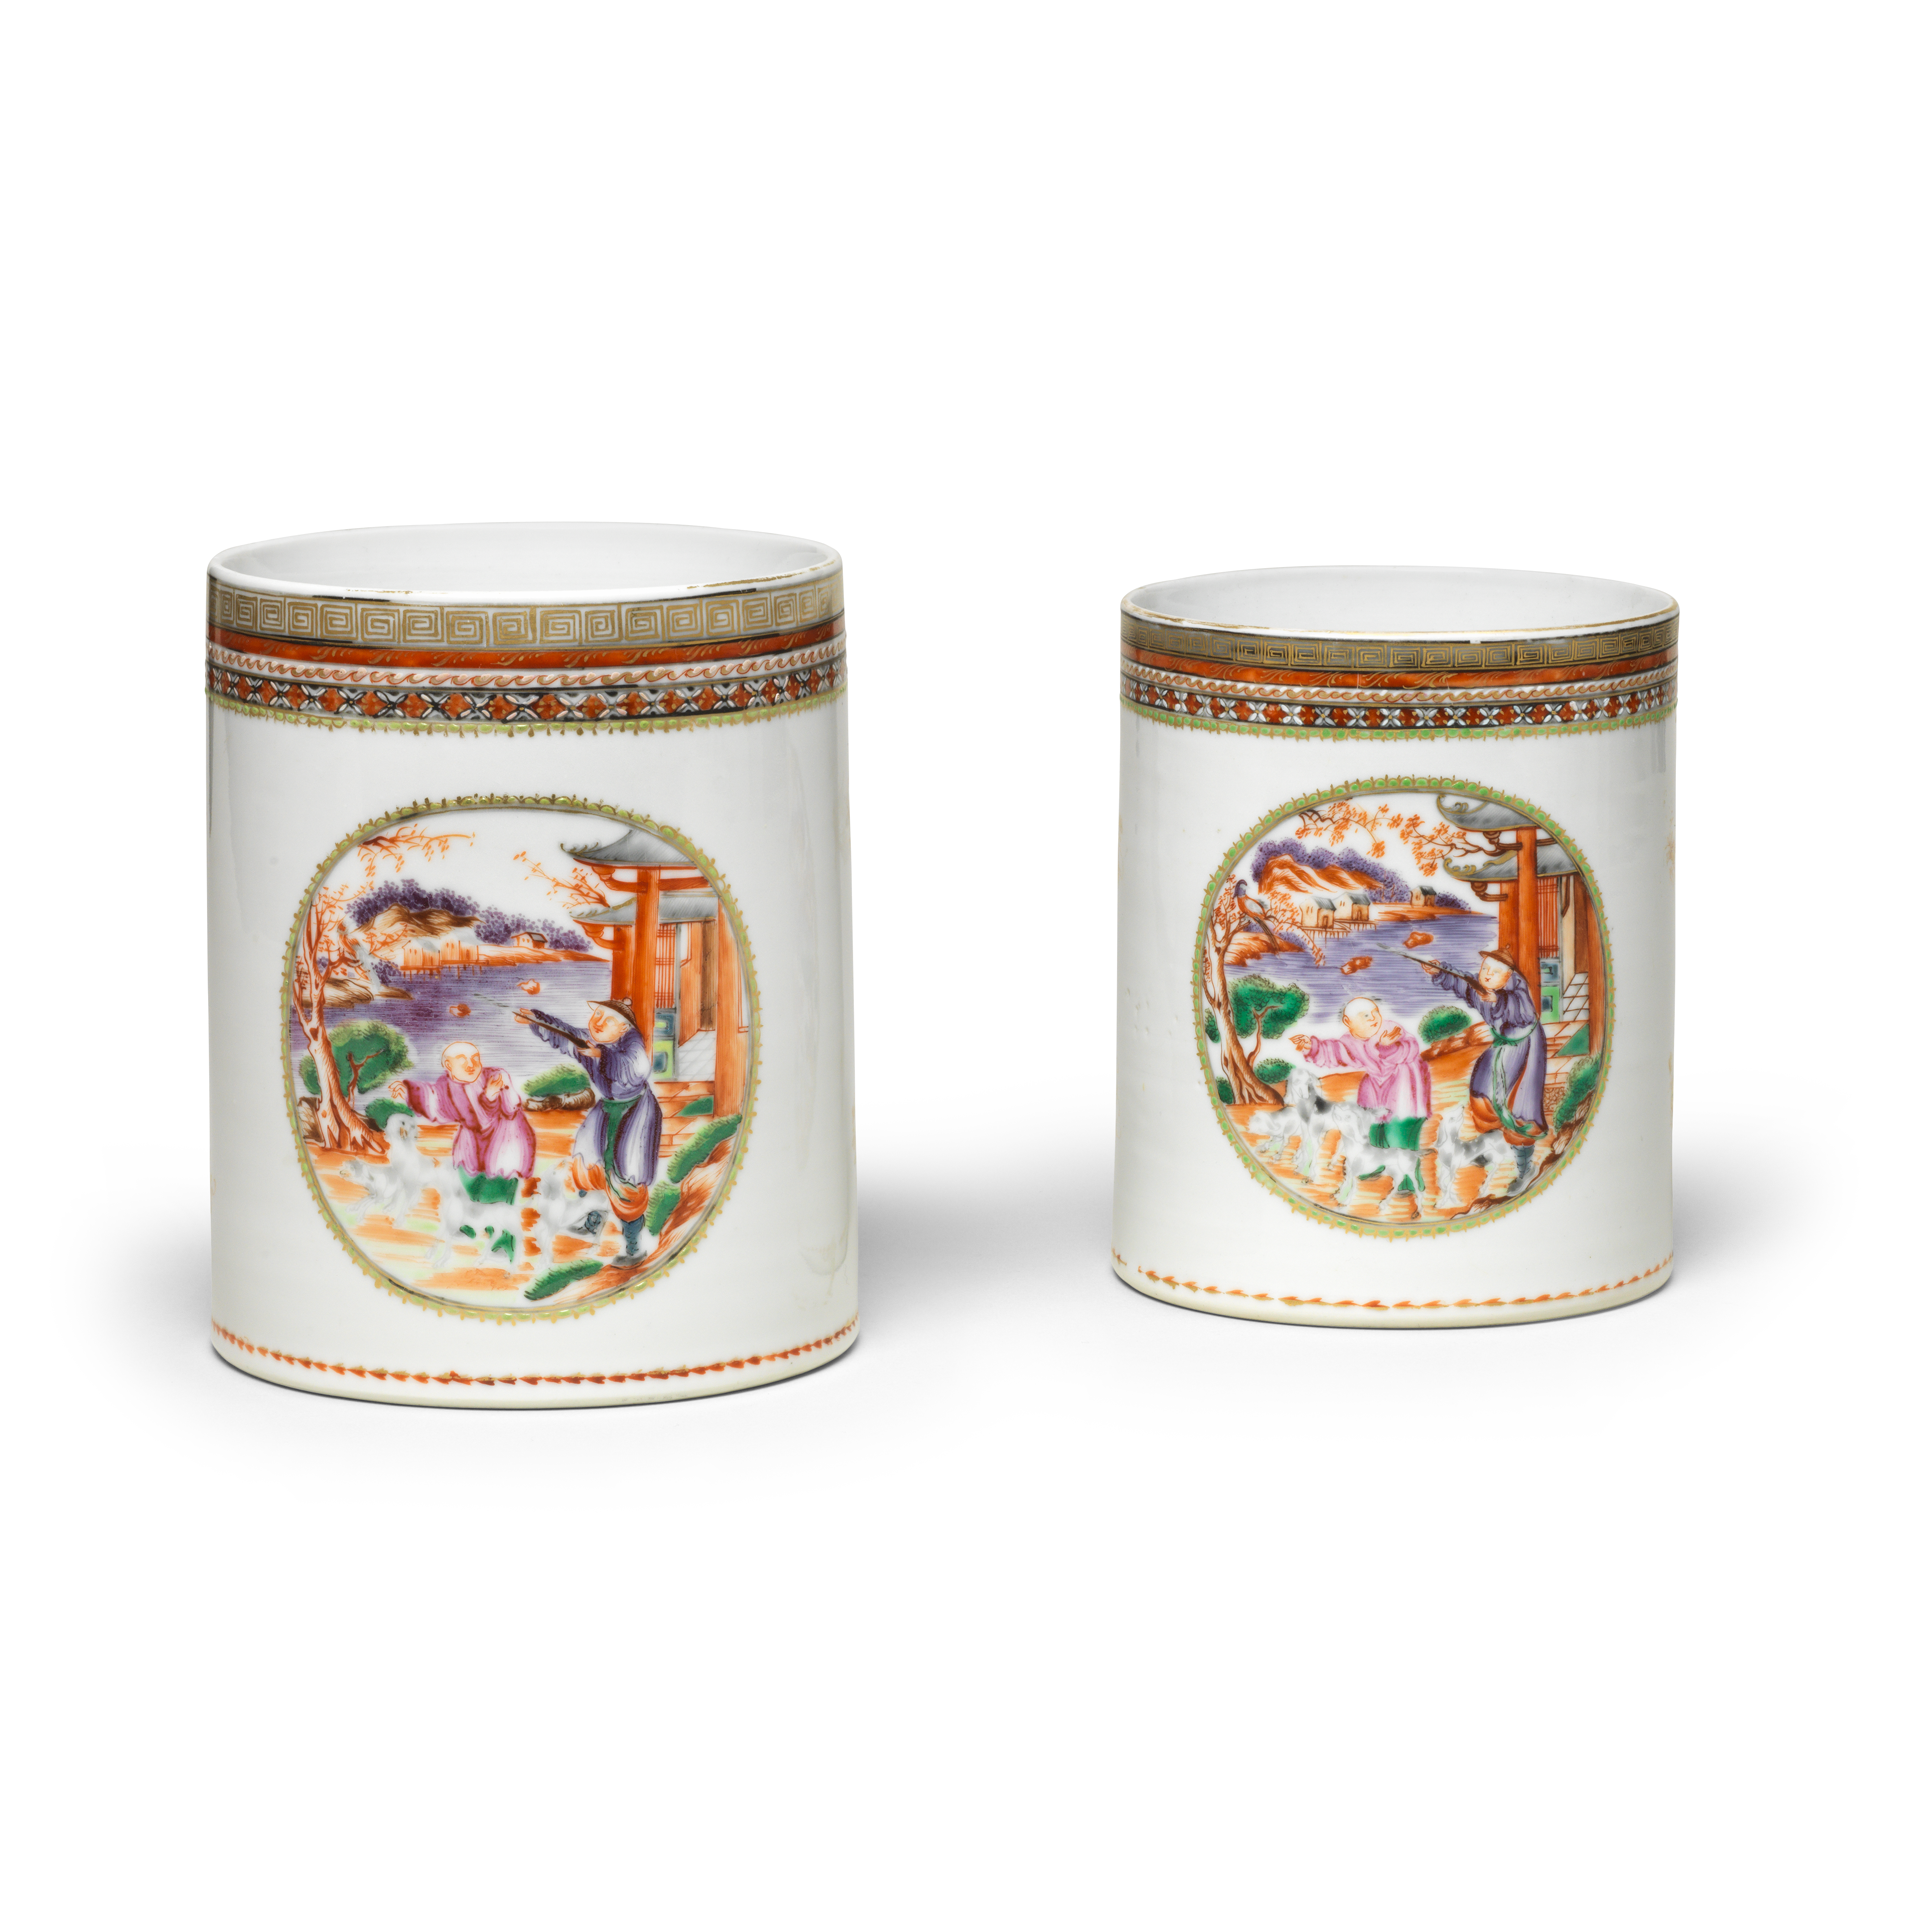 Pair of 'Hunting Scene' Mugs, Porcelain decorated in overglaze famille rose enamels and gold, Qianlong period (1736-1795)